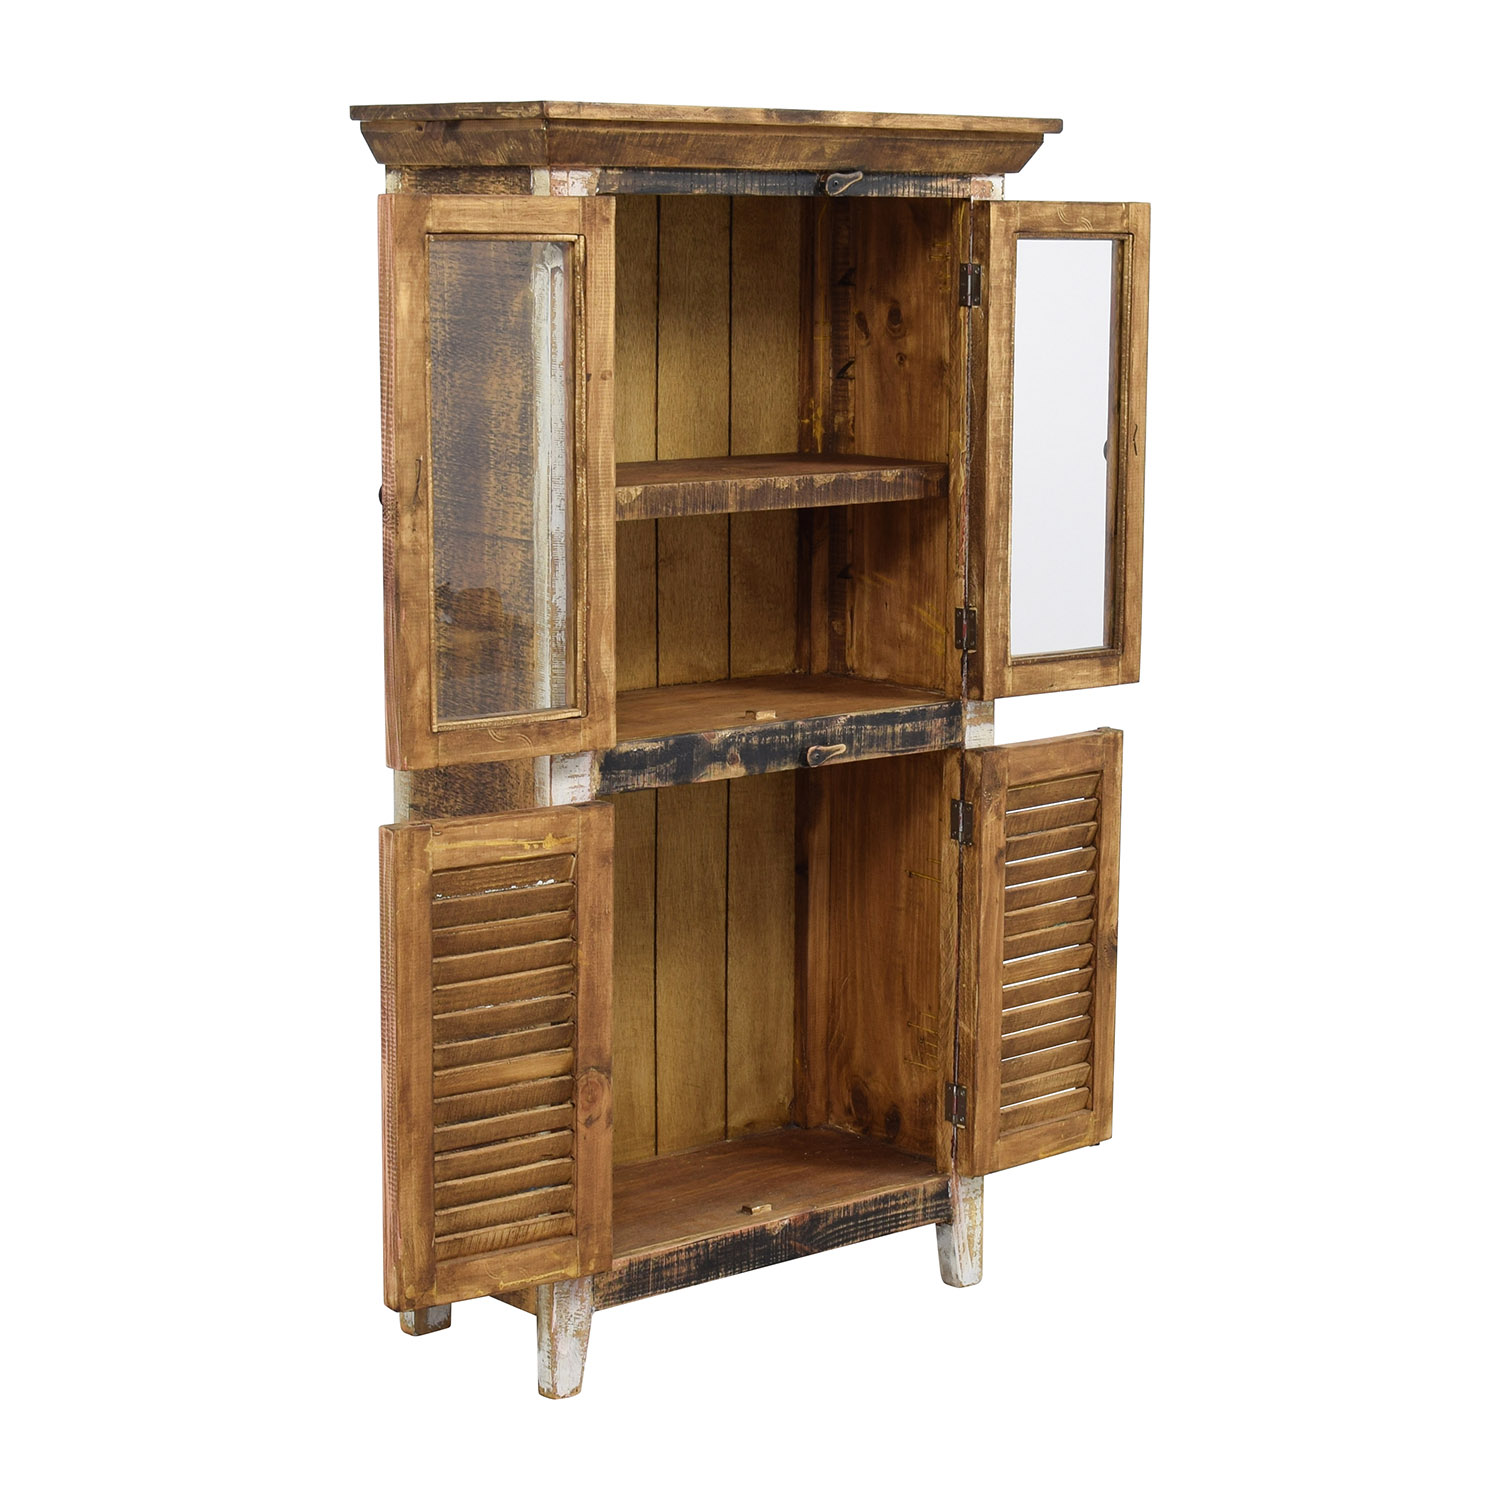 ... buy Antique Rustic Glass and Wood Cabinet Horizon Home ... - 48% OFF - Horizon Home Antique Rustic Glass And Wood Cabinet / Storage